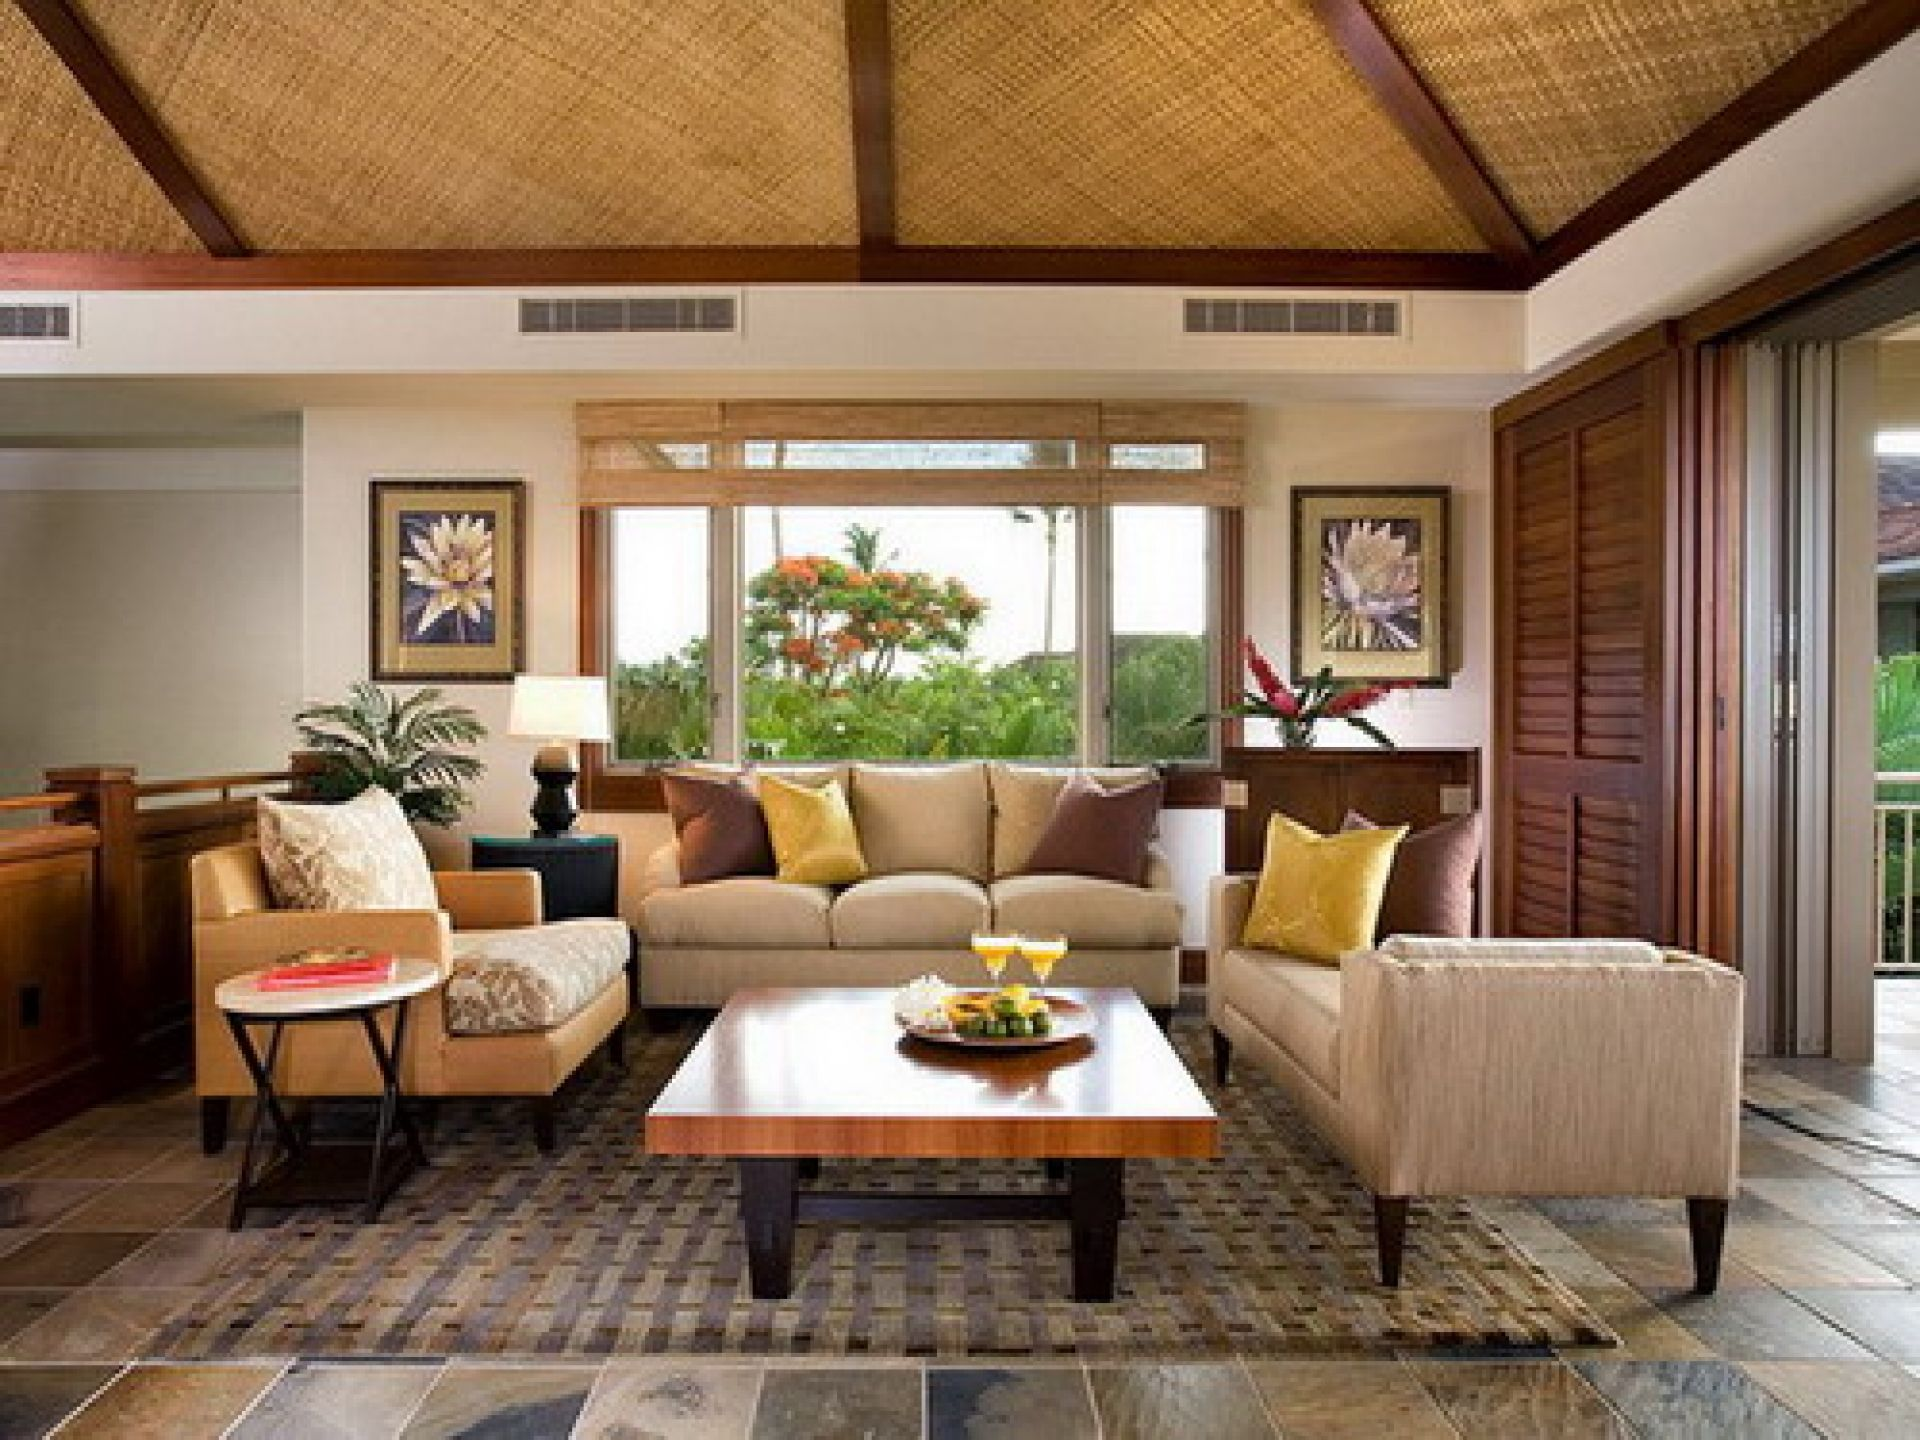 Tropical interior design 1920x1440 elegant tropical style - Interior decorating living rooms ...